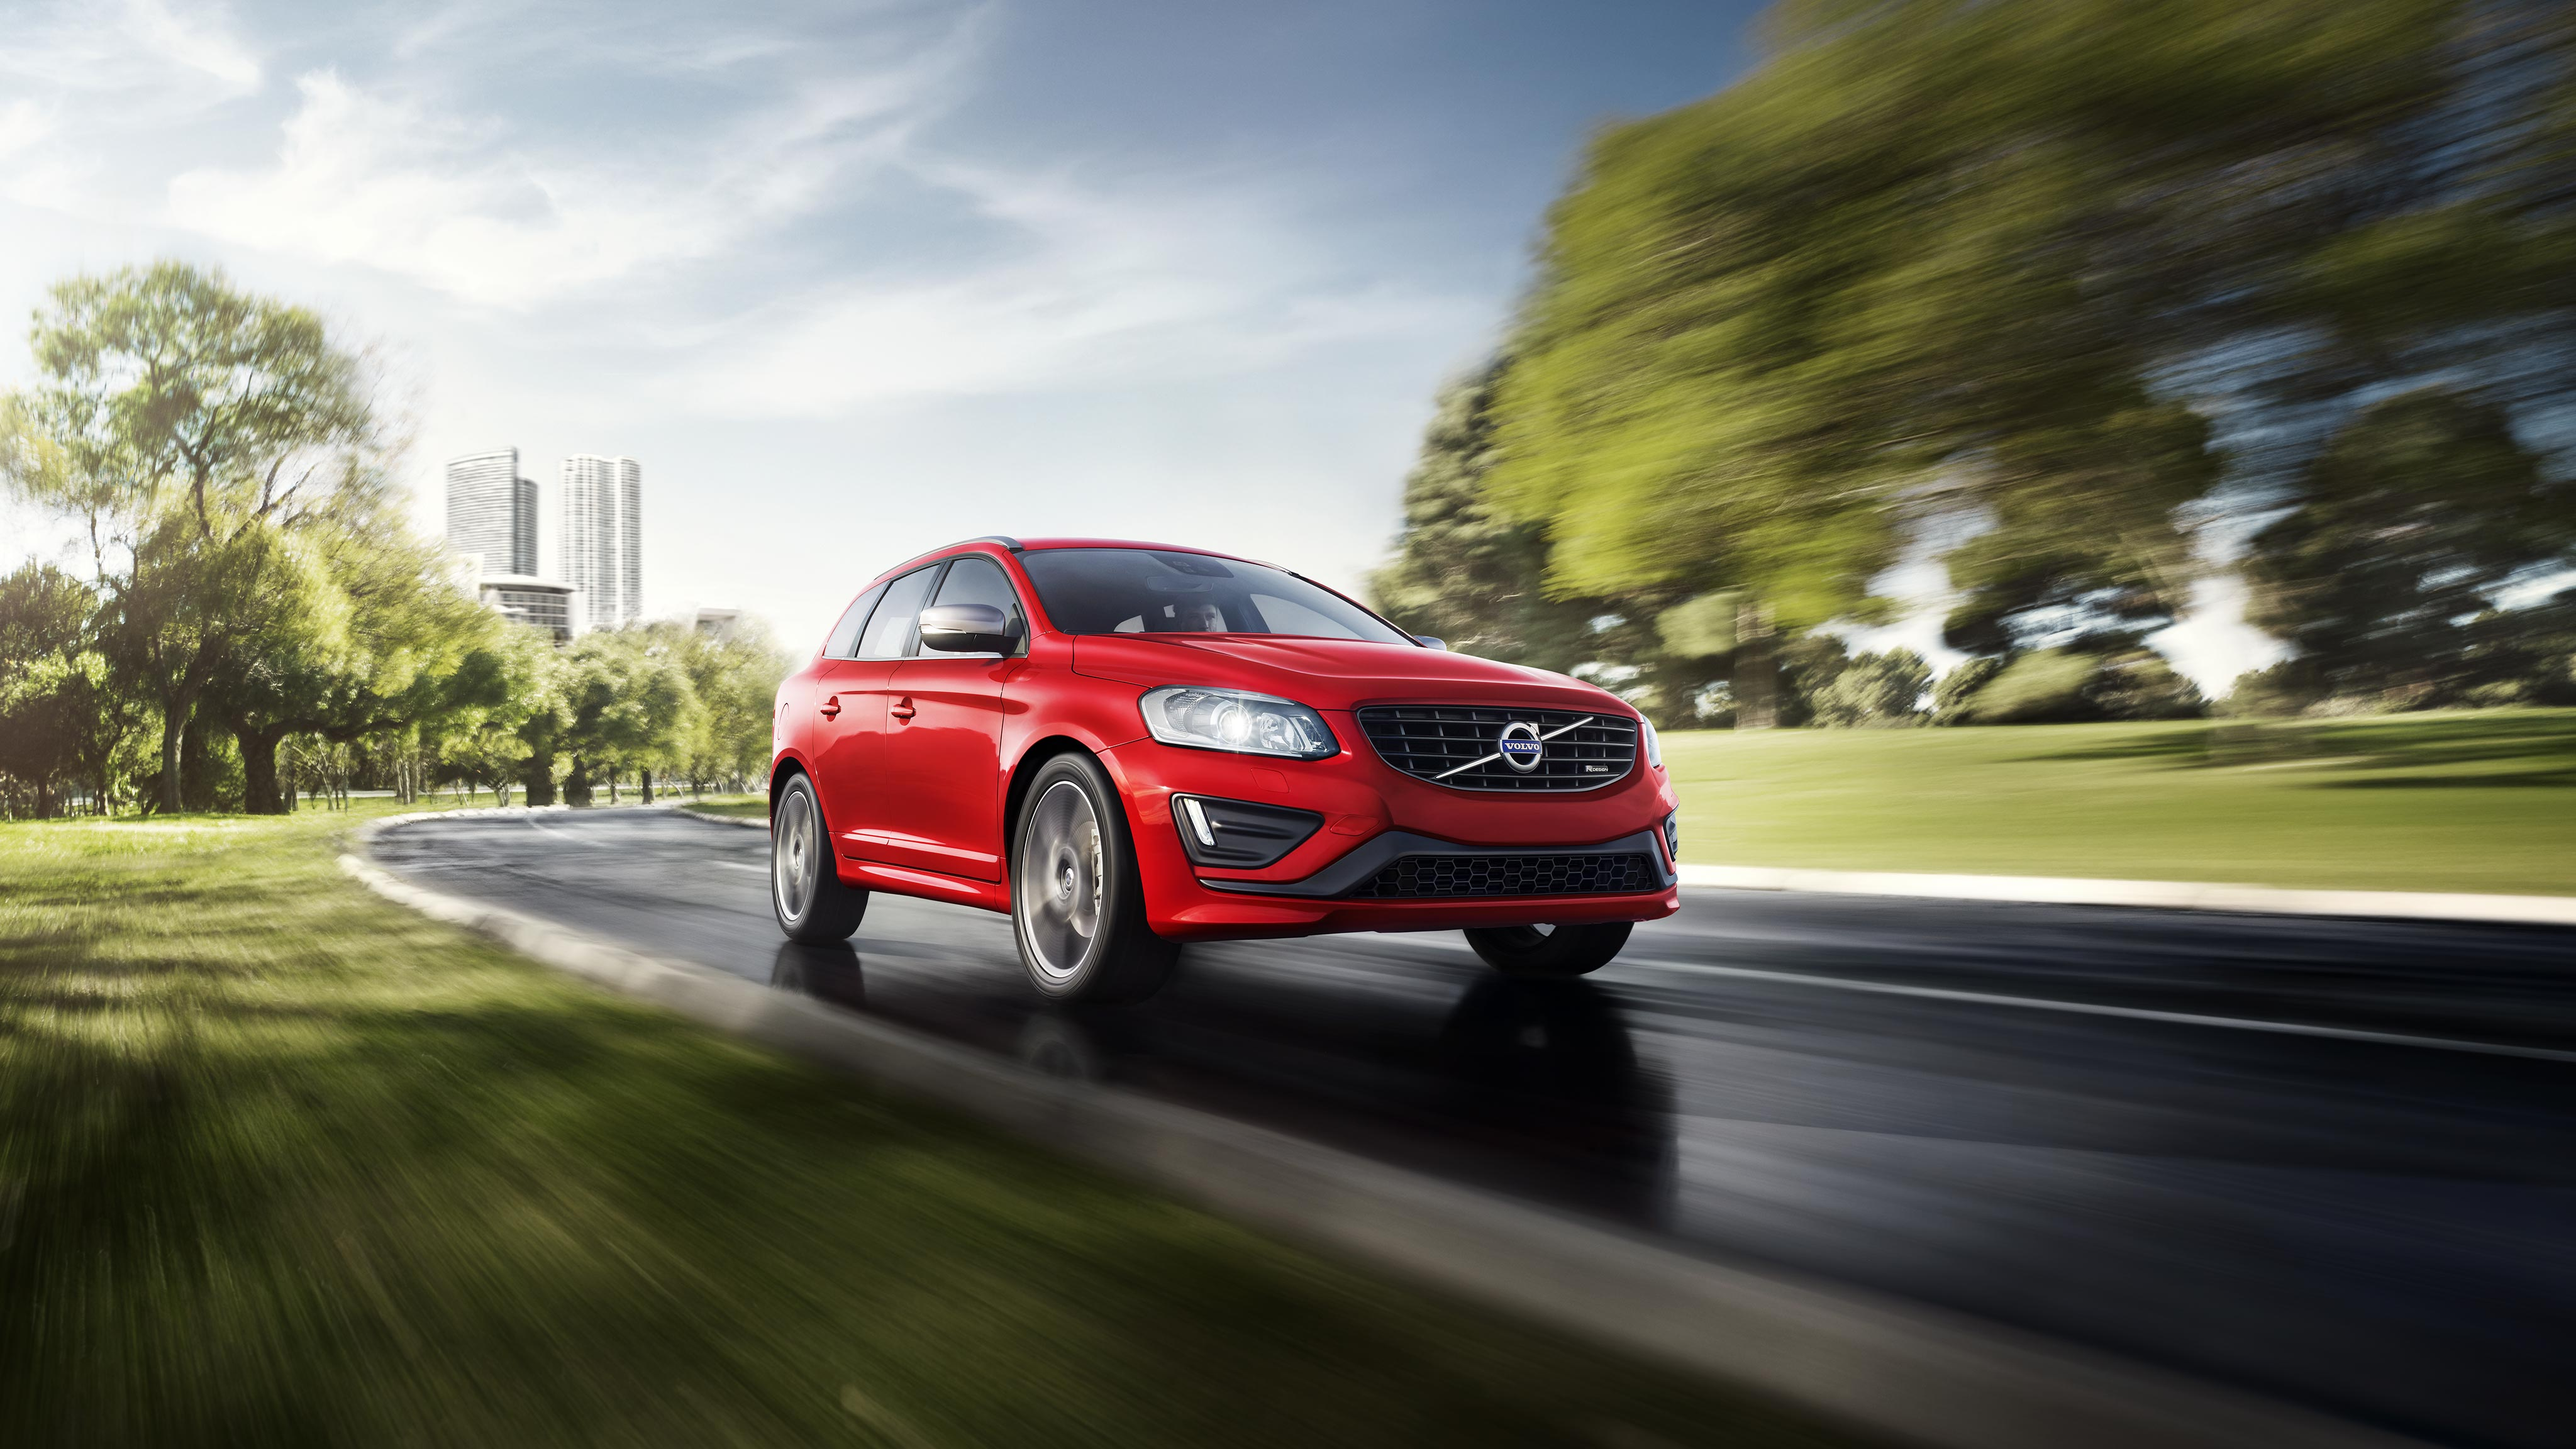 Volvo XC60 driving through city